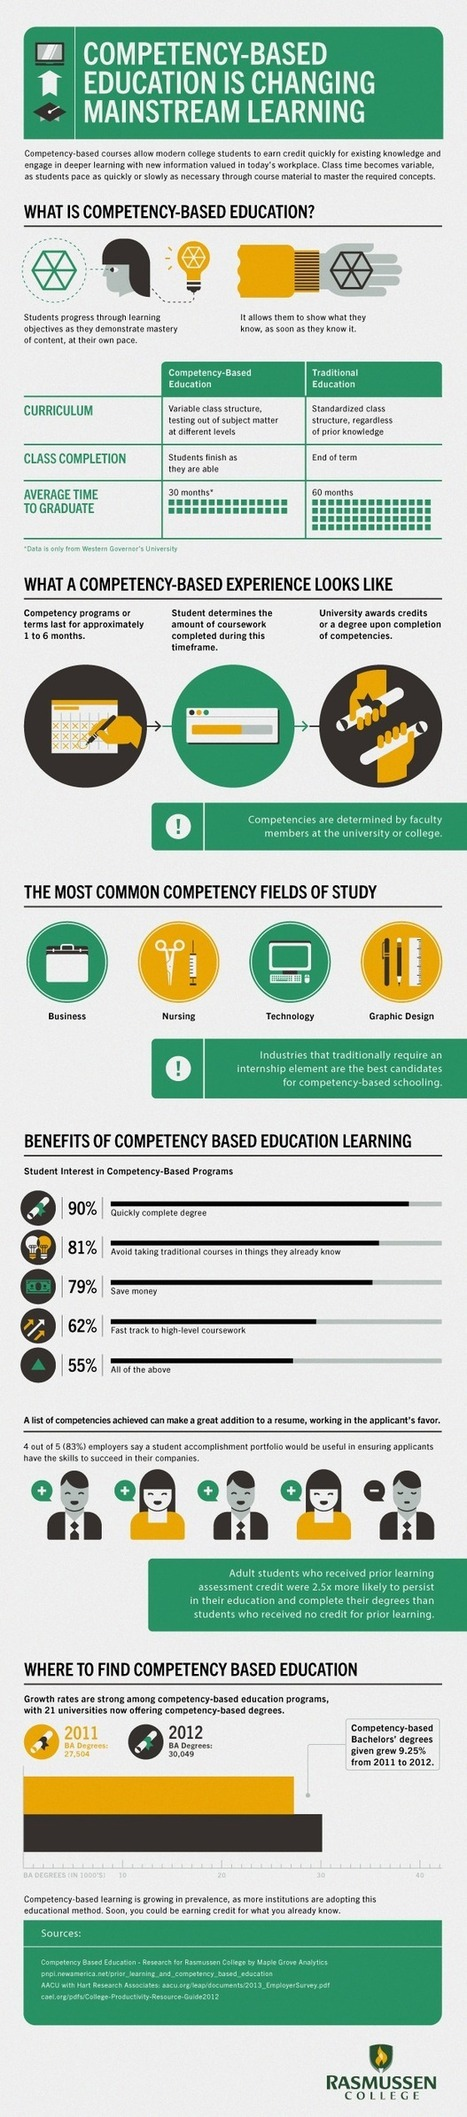 How Competency-Based Education is Changing Mainstream Learning Infographic | Free Education | Scoop.it